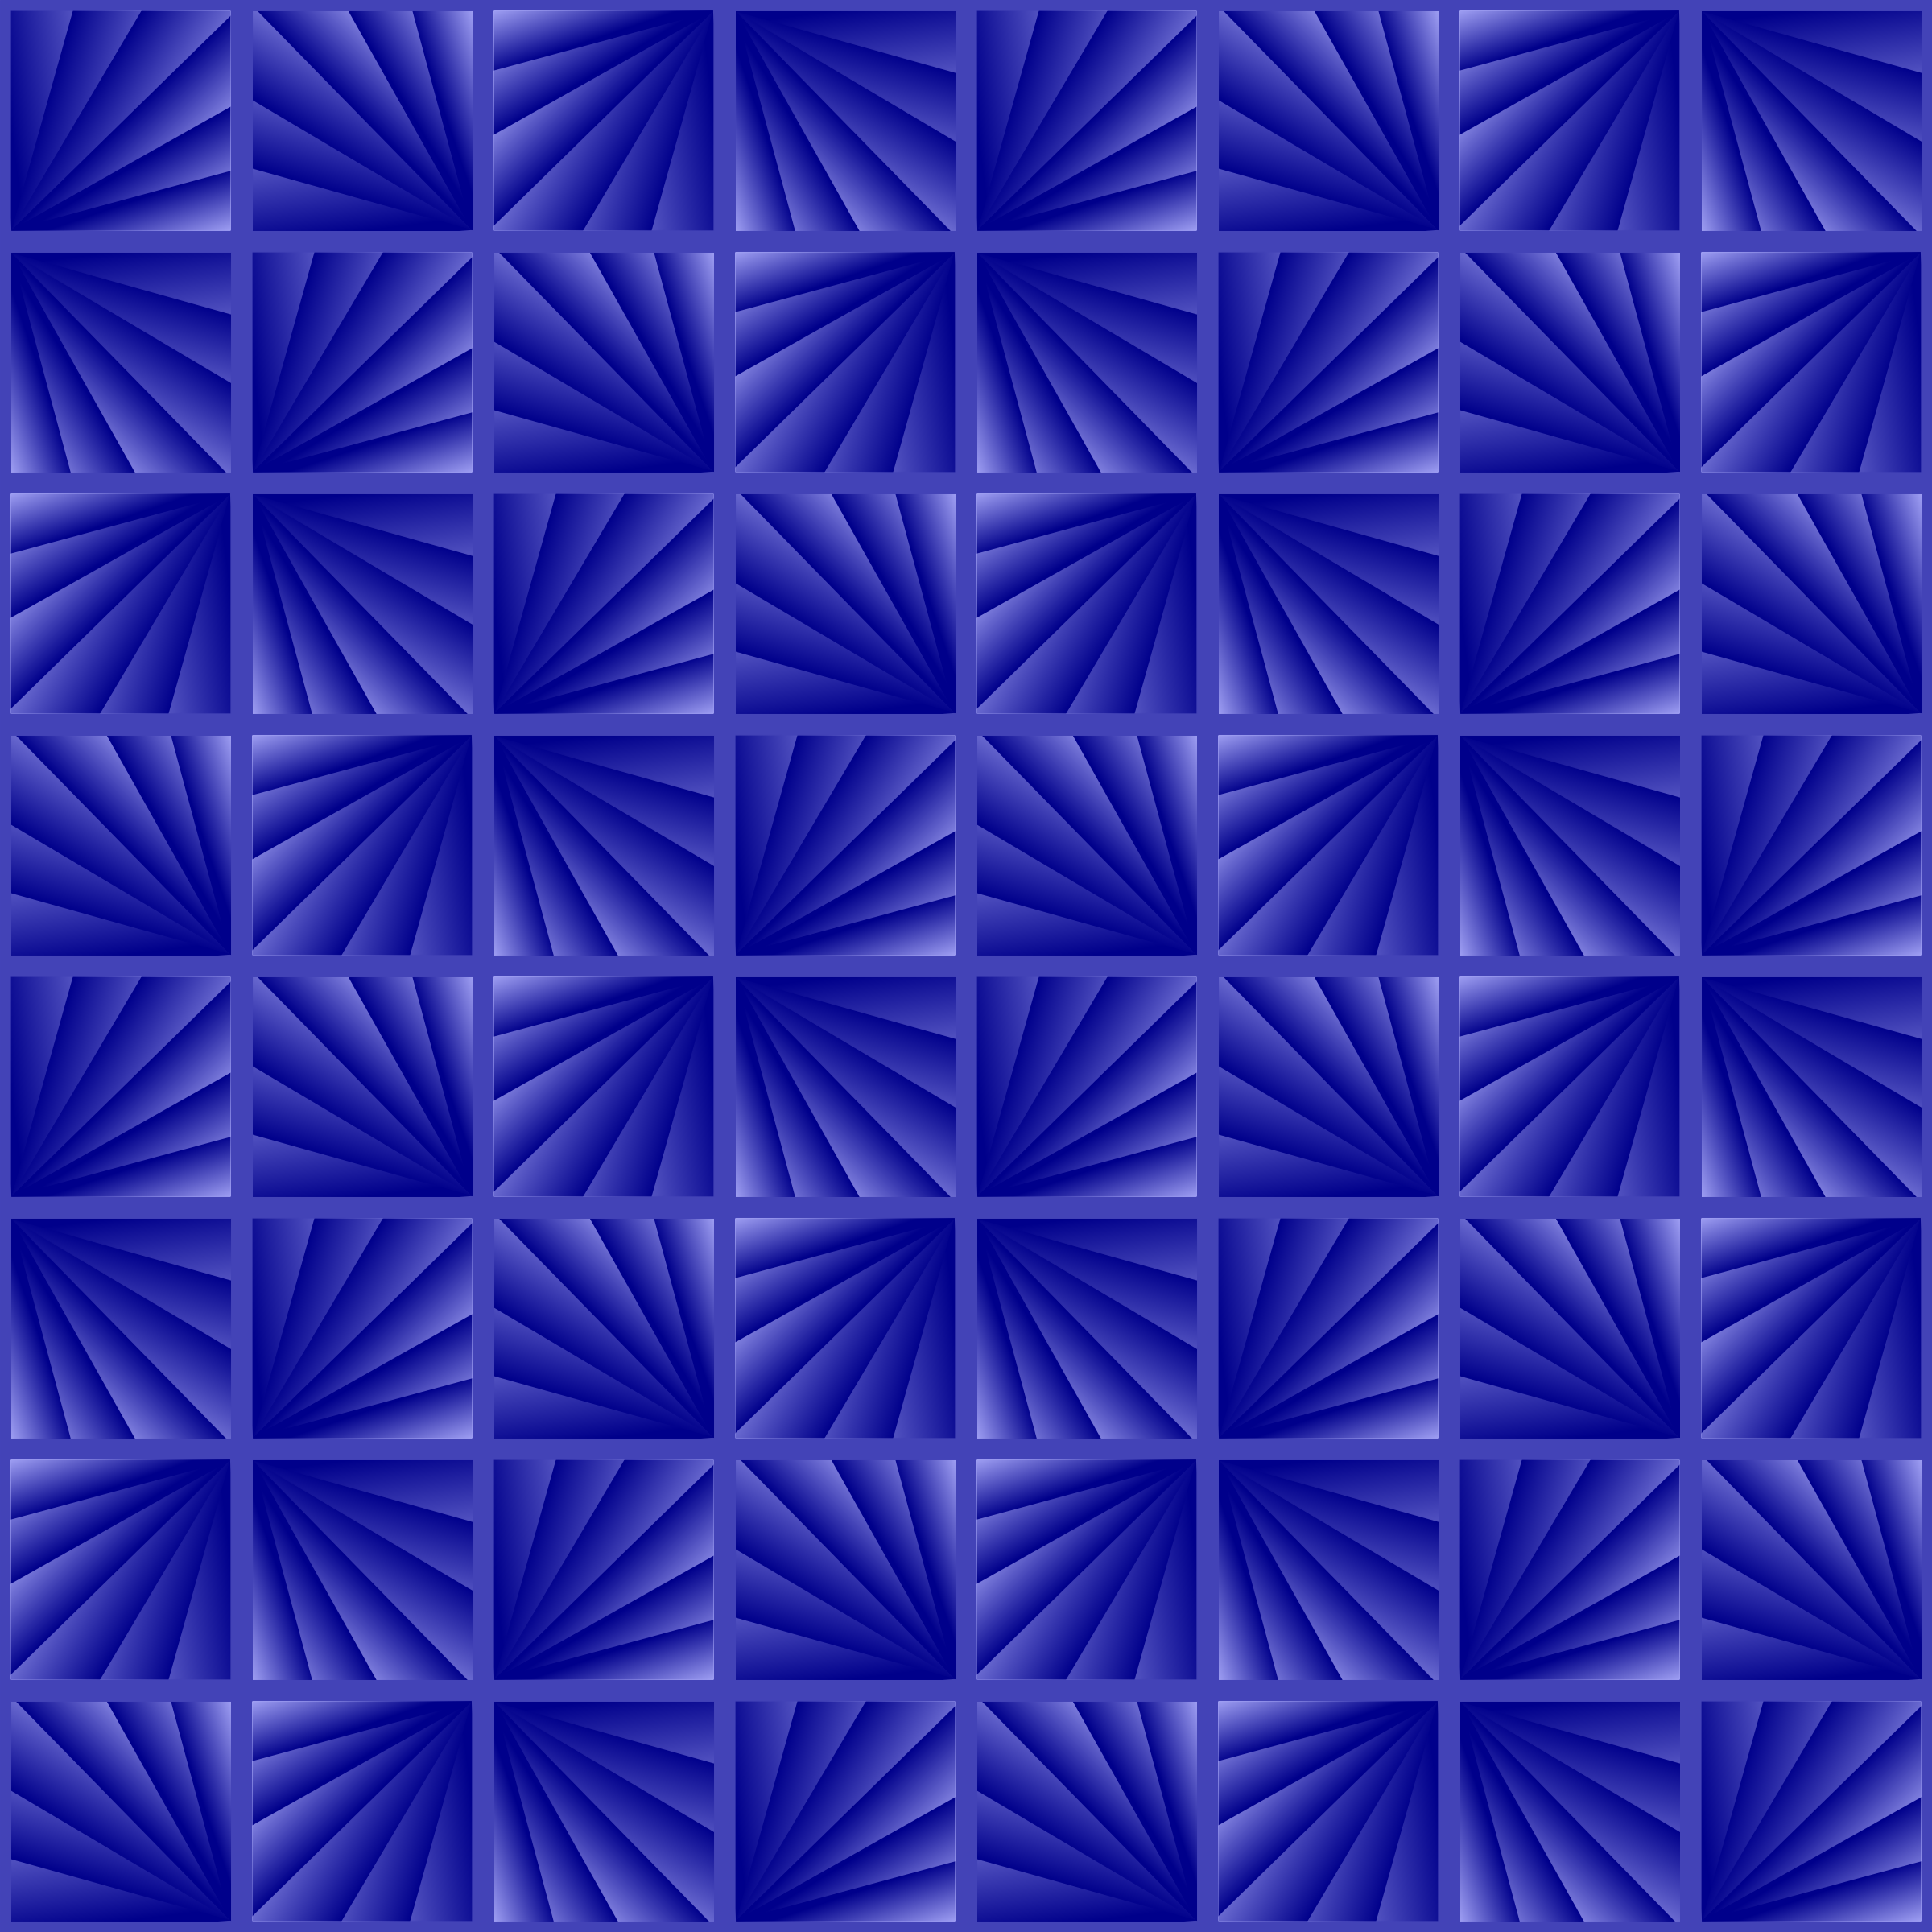 Background pattern 223 (colour 2) by Firkin